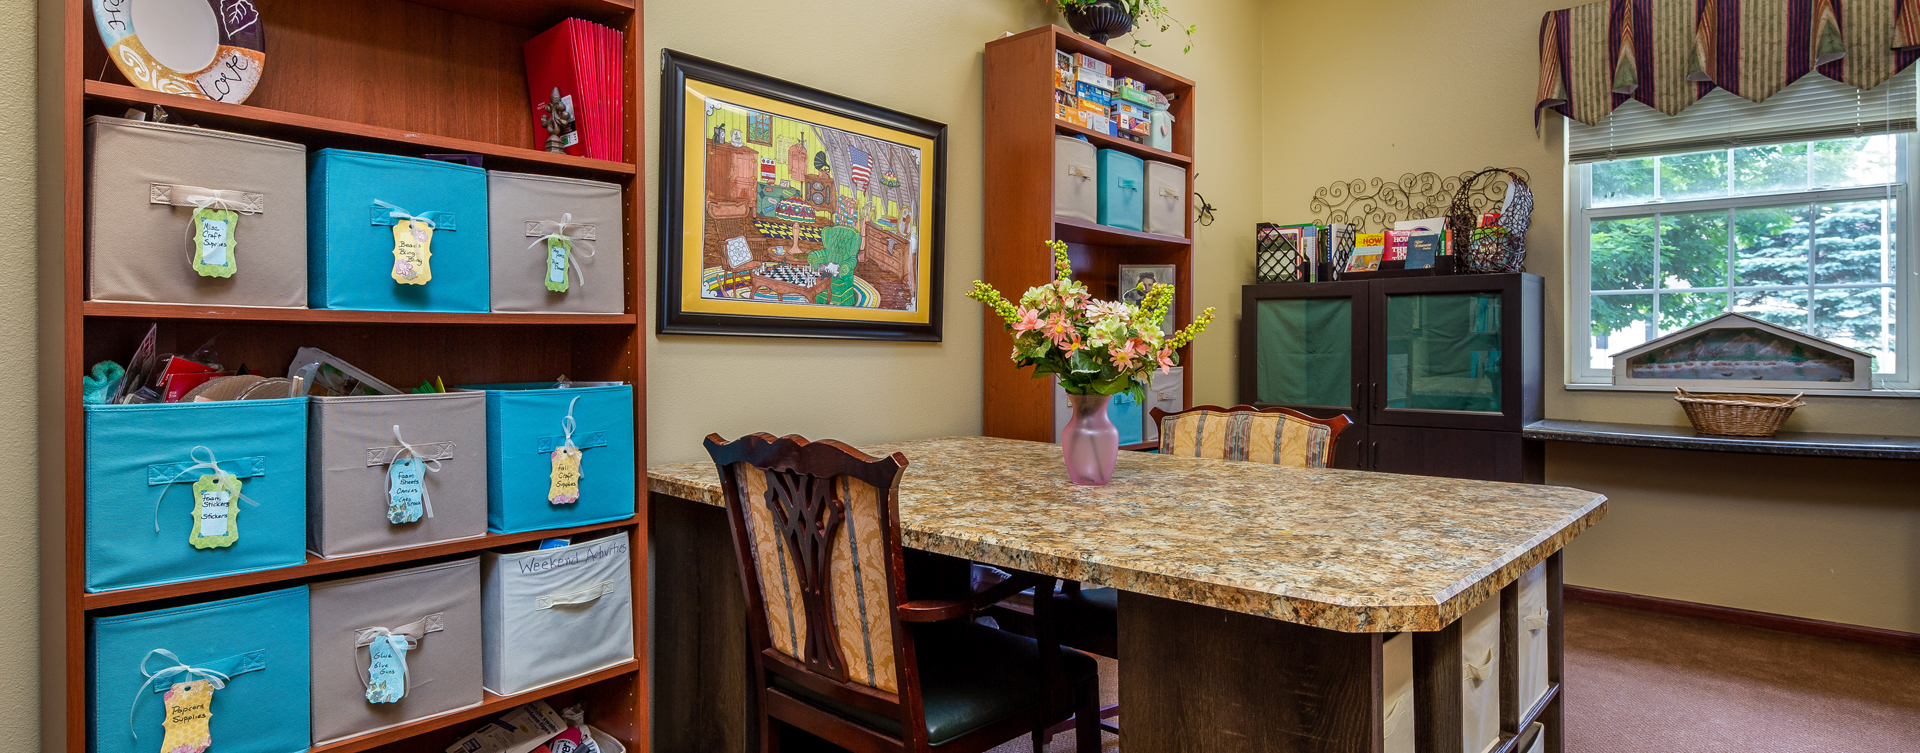 Unleash your creative side in the activity room at Bickford of Battle Creek